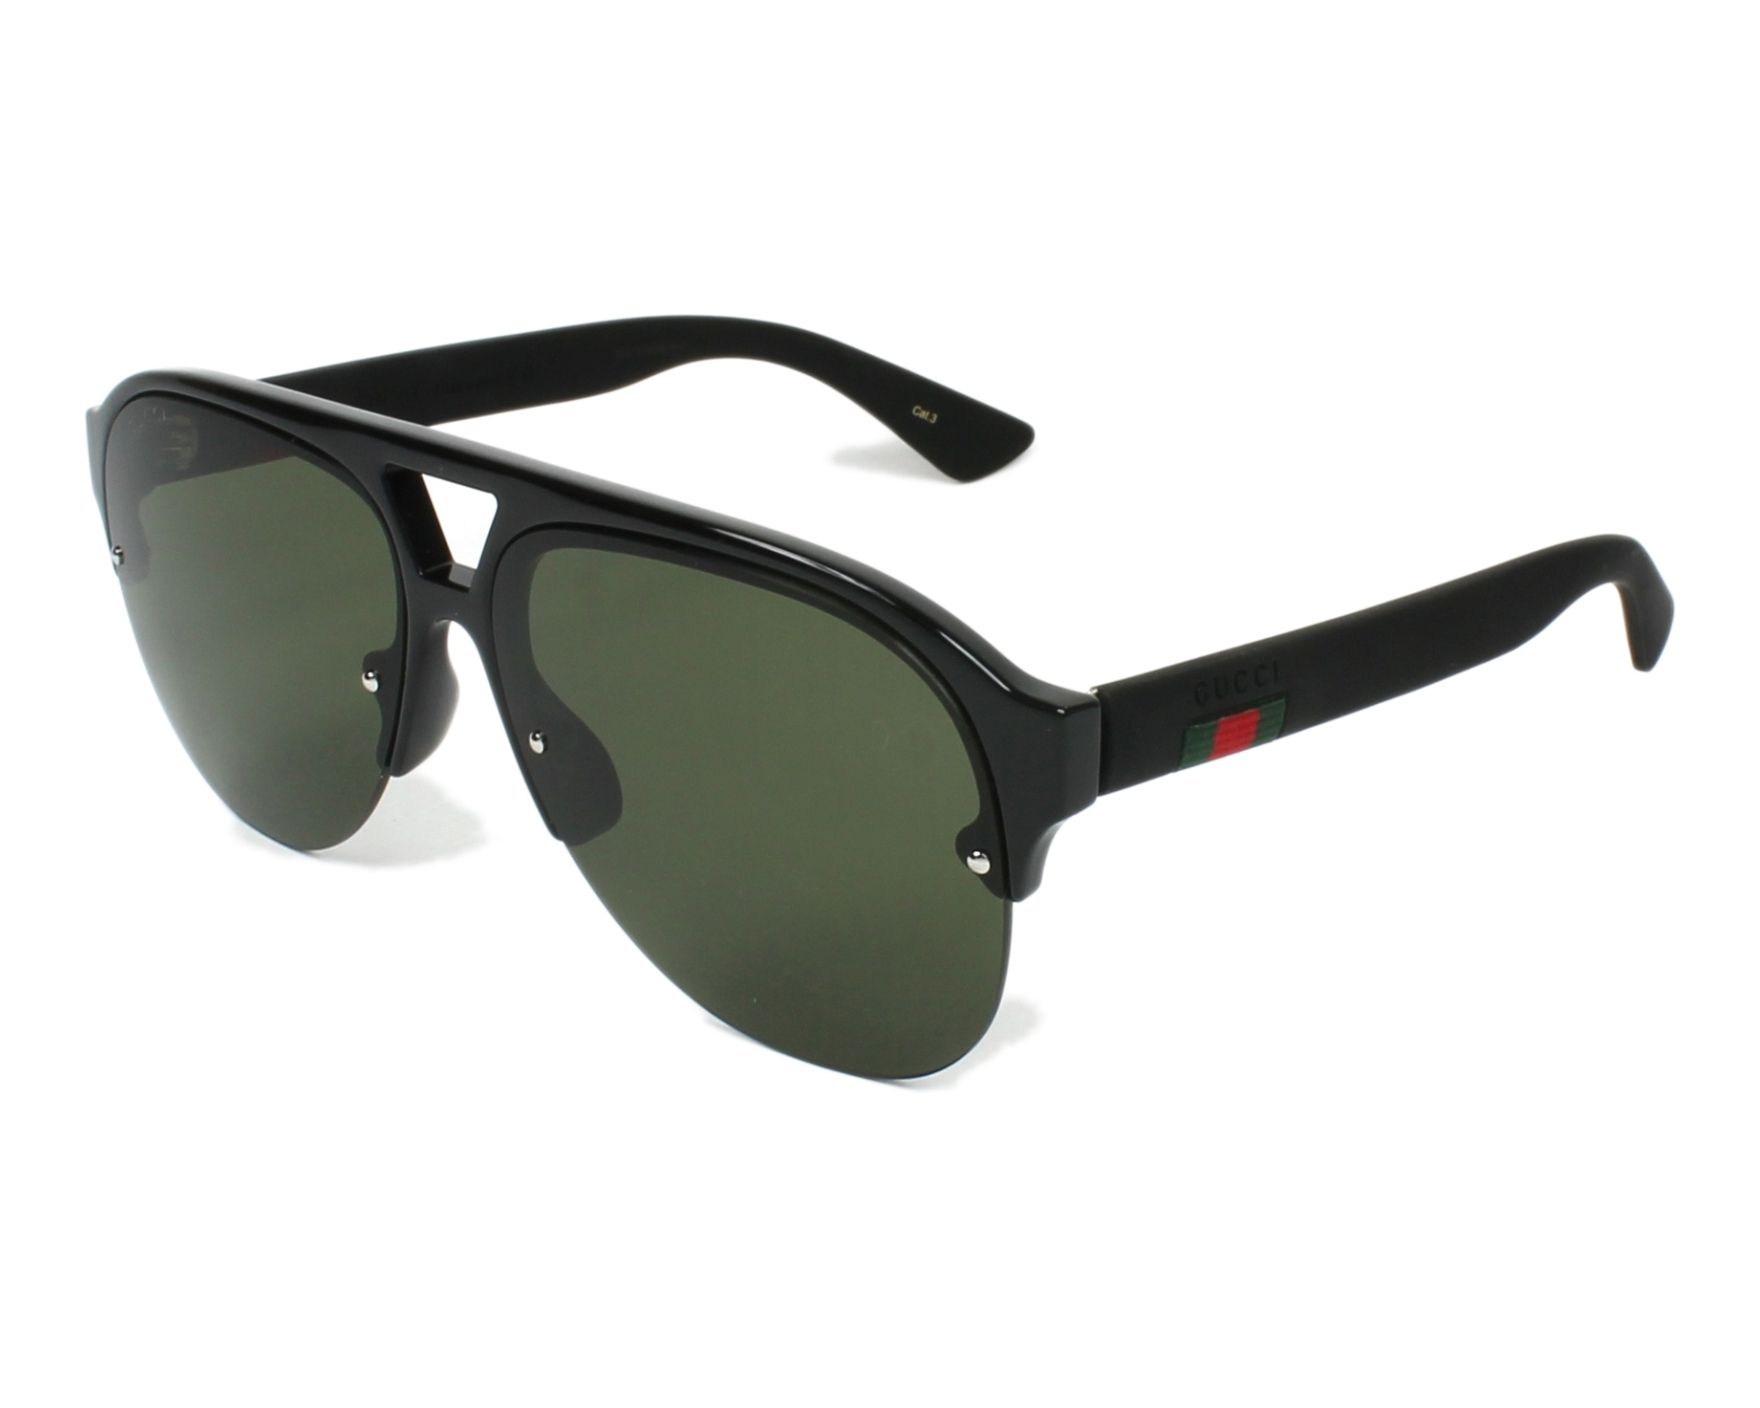 4a7ea965bb8 Sunglasses Gucci GG-0170-S 001 59-13 Black Black profile view